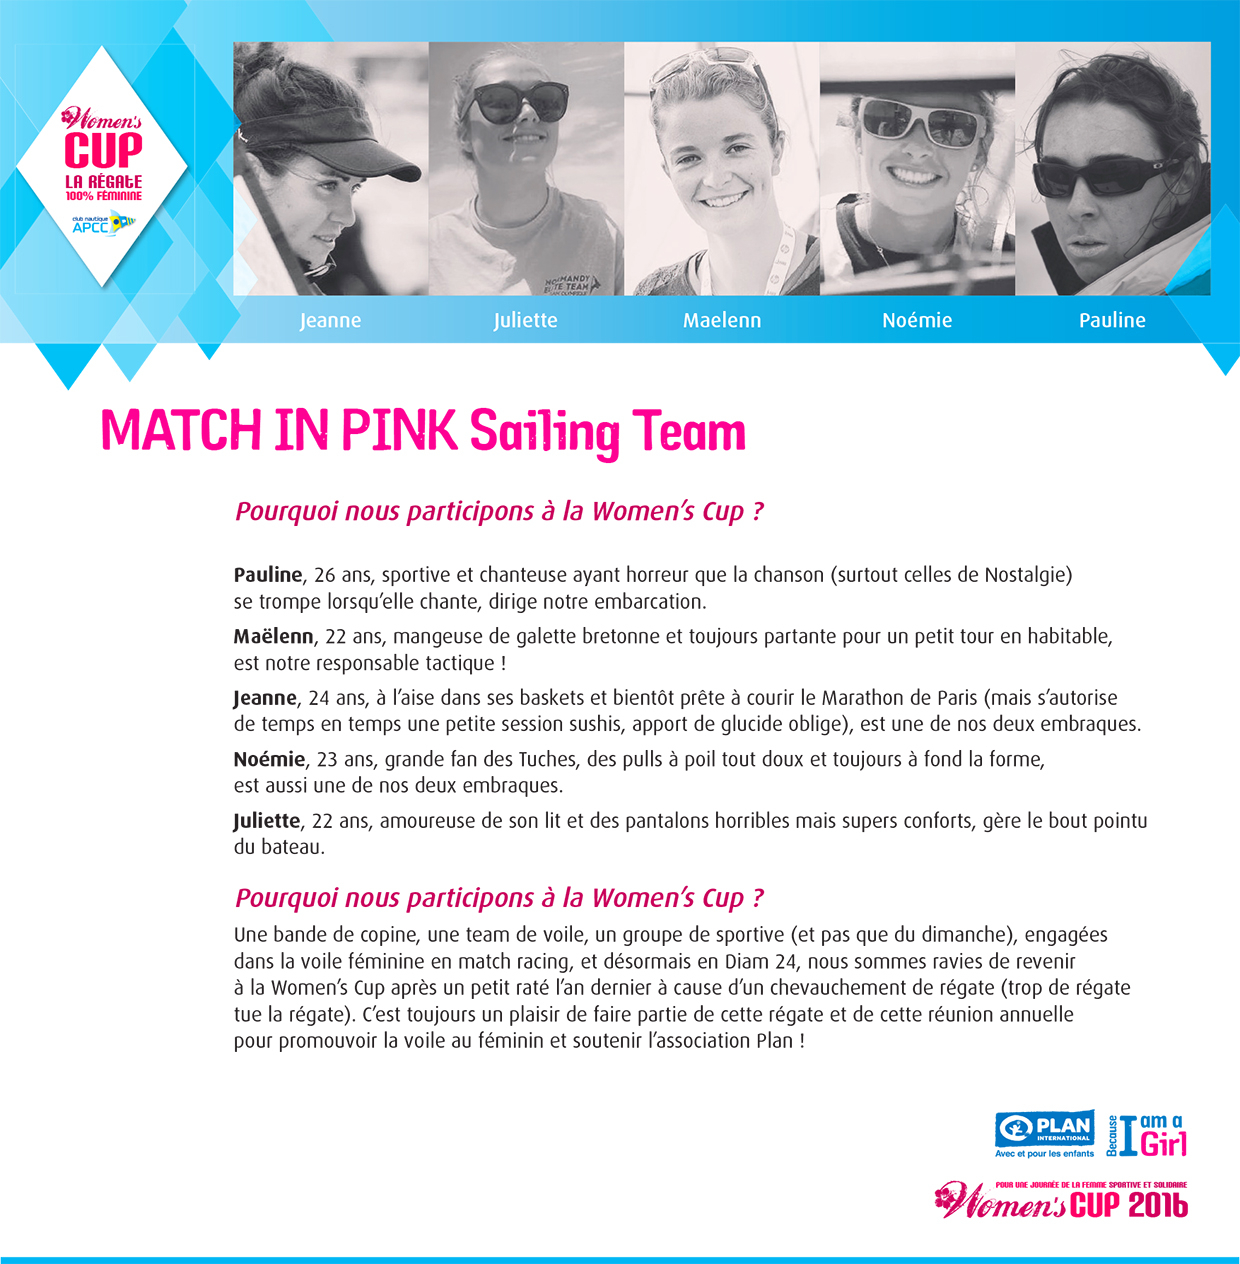 http://www.womencup.fr/wp-content/uploads/2015/11/MATCH-IN-PINK.jpg